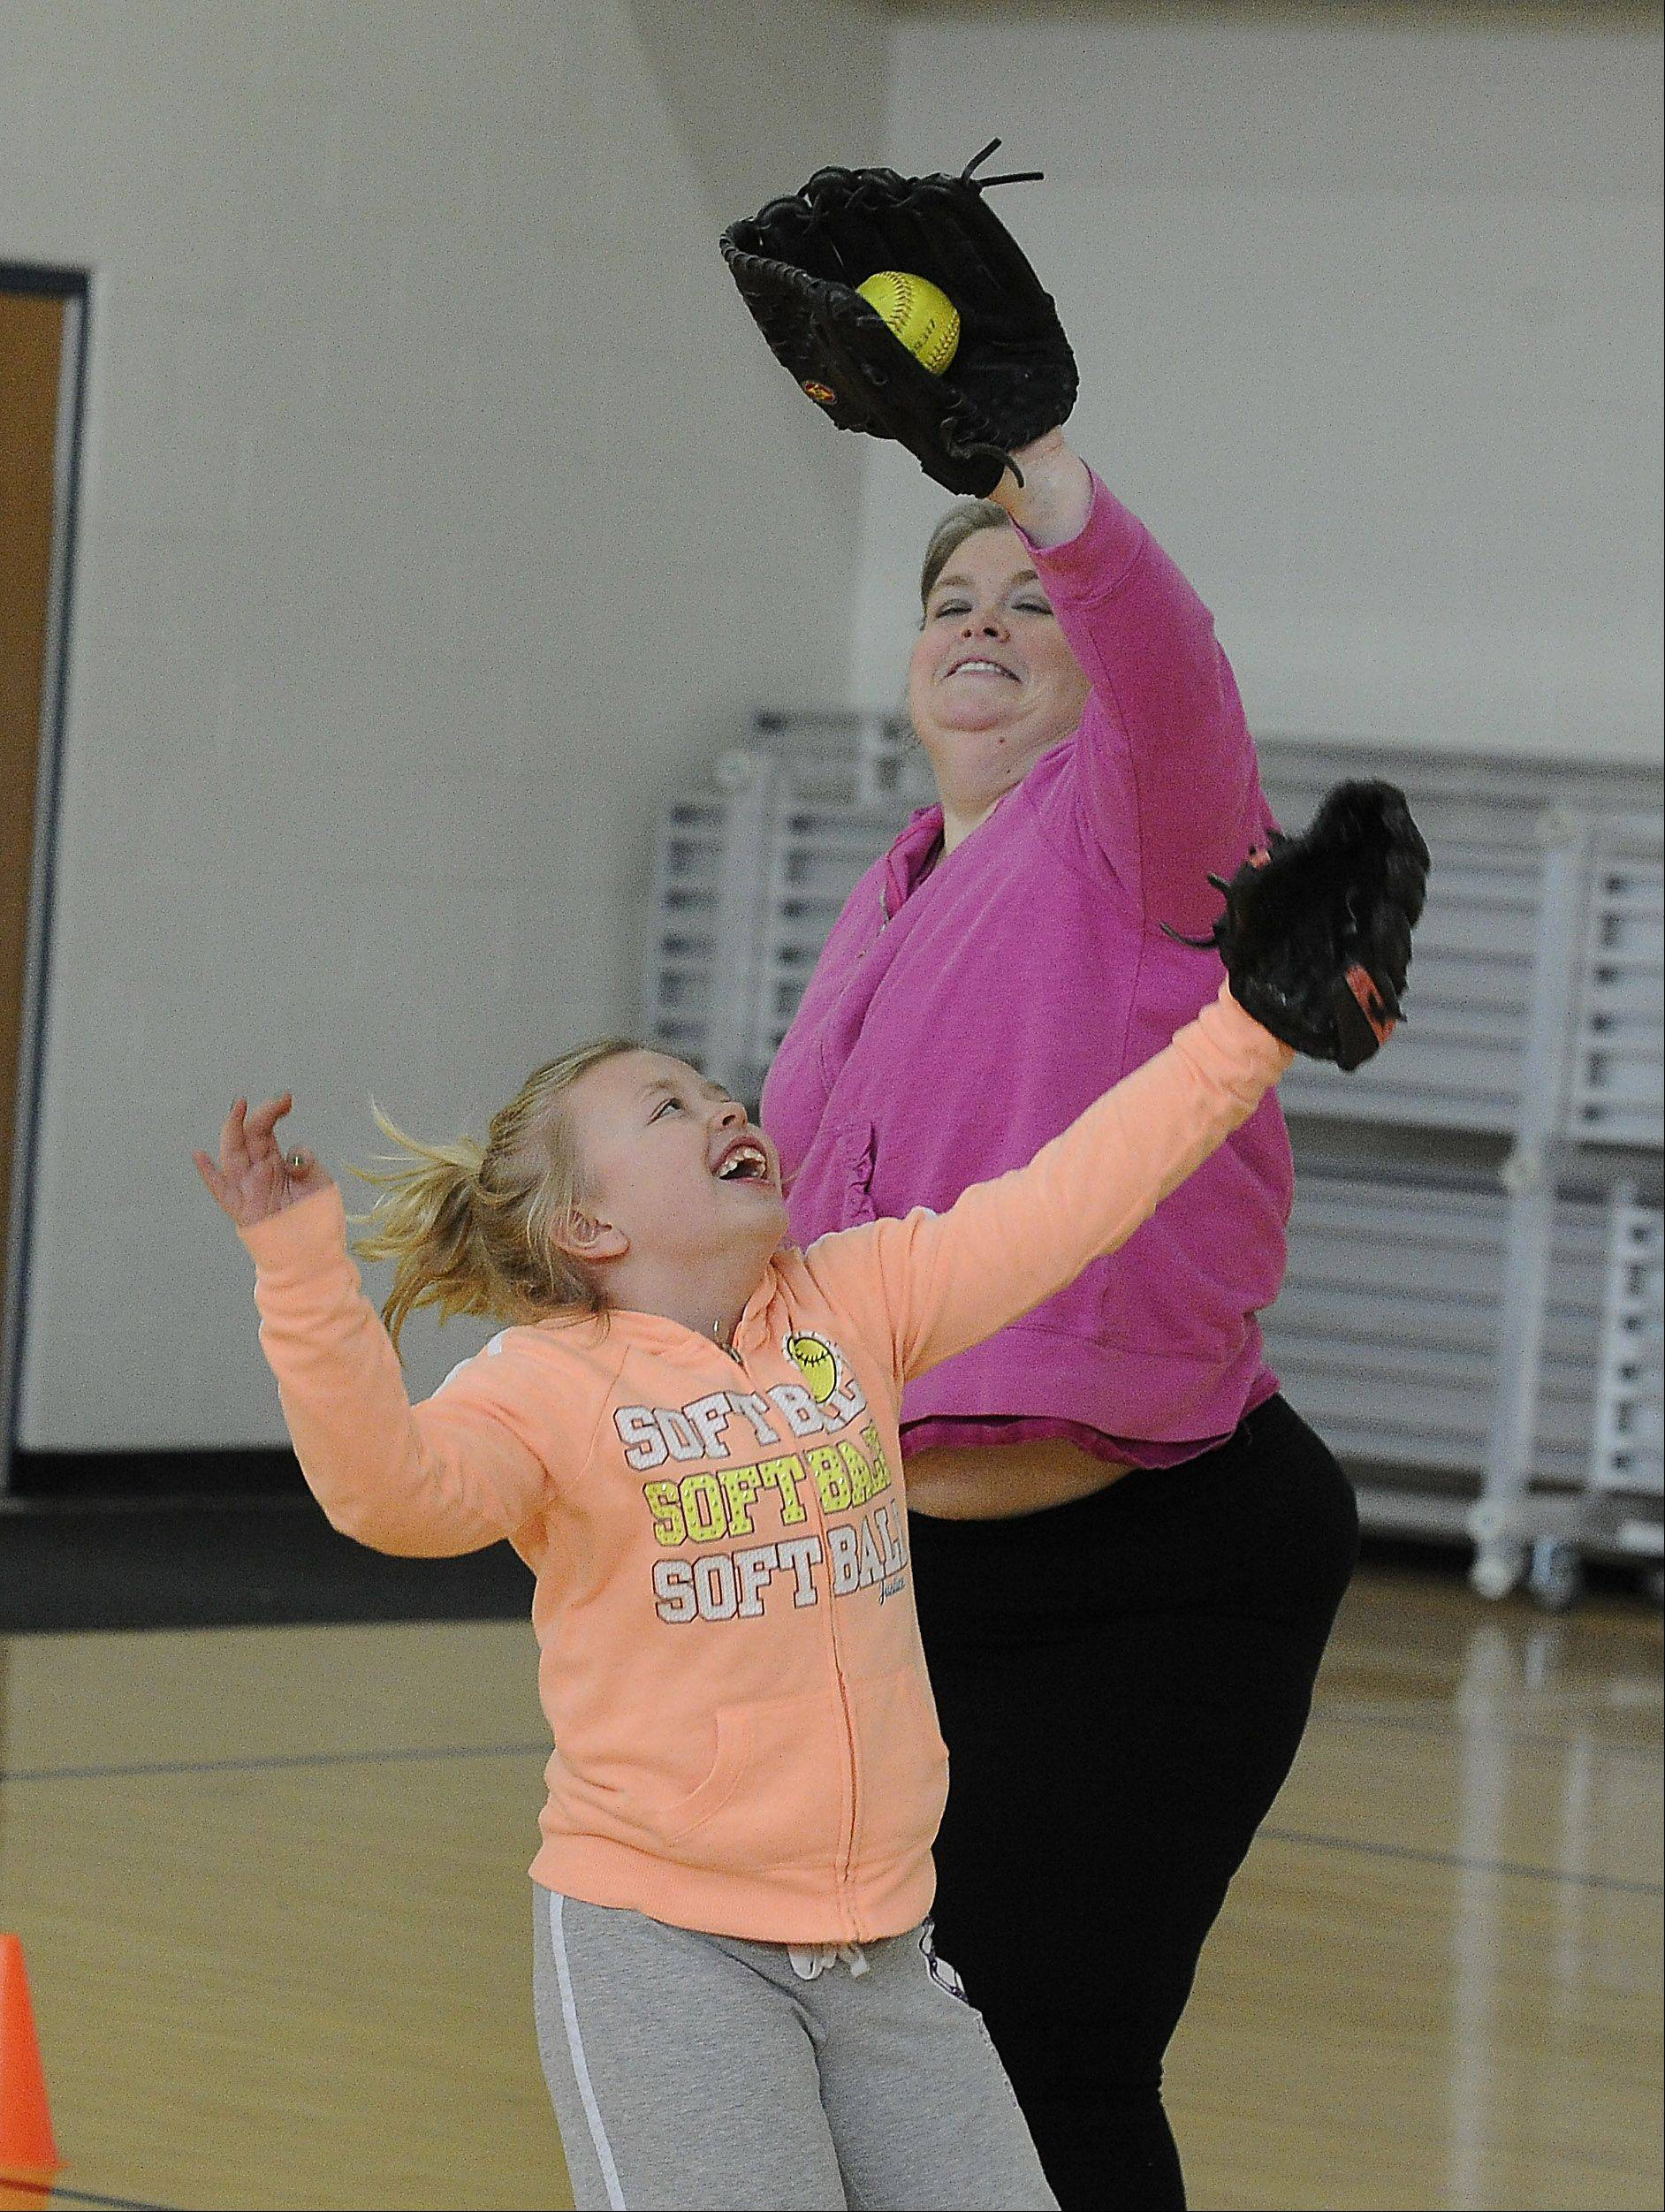 Megan McCarthy-Cook plays catch with her daughter Molly, 8, in the gym at the Hoffman Estates Park District as part of her exercise routine.